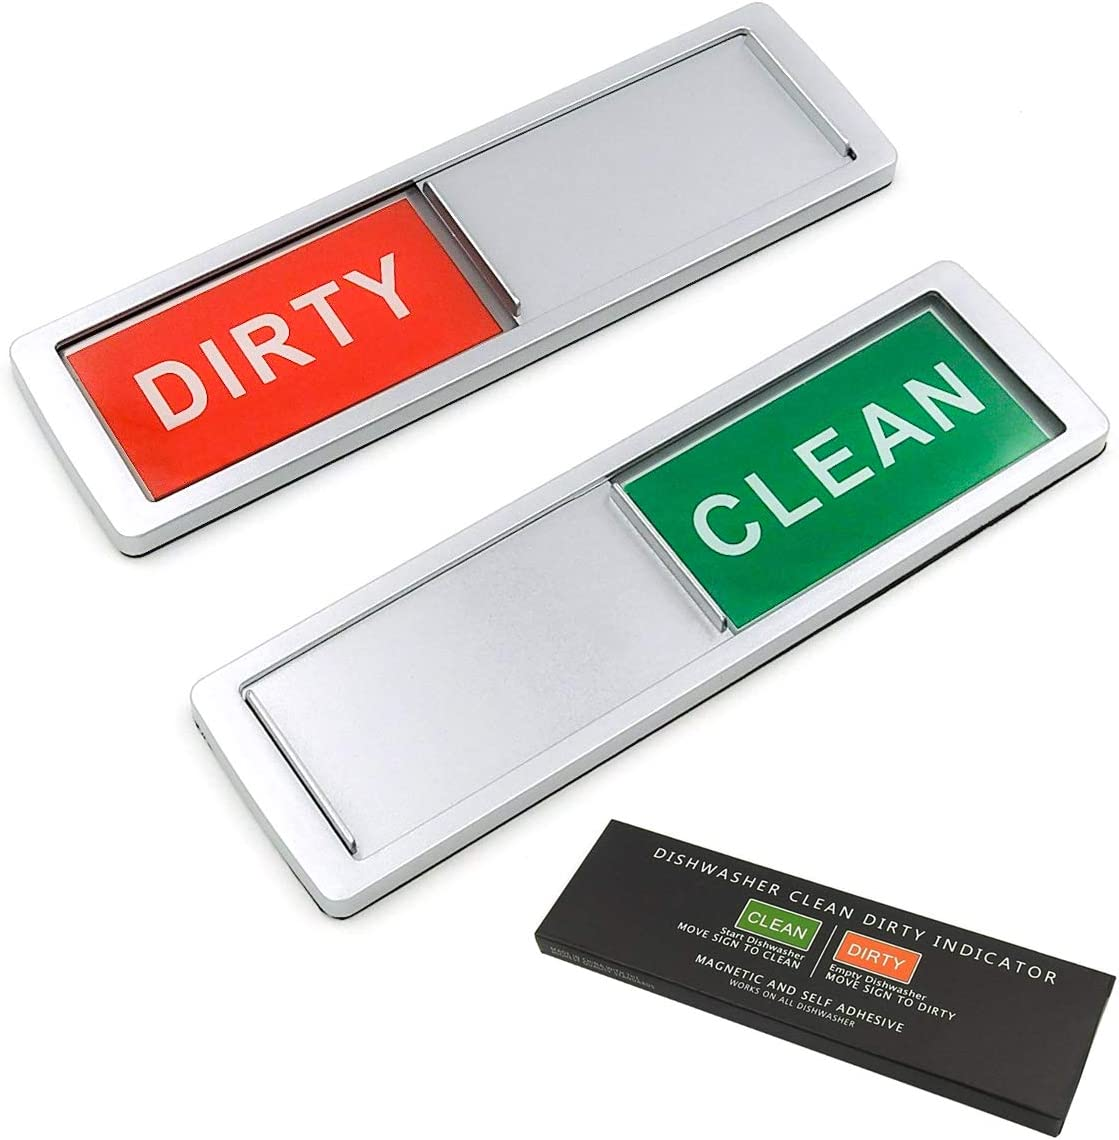 Dishwasher Magnet Clean Dirty Sign Non-Scratch Magnetic Silver Signage Indicator Decorative Work on All Dishwashers Kitchen Gadgets Slider Locks For Home and Office Use (Silver)